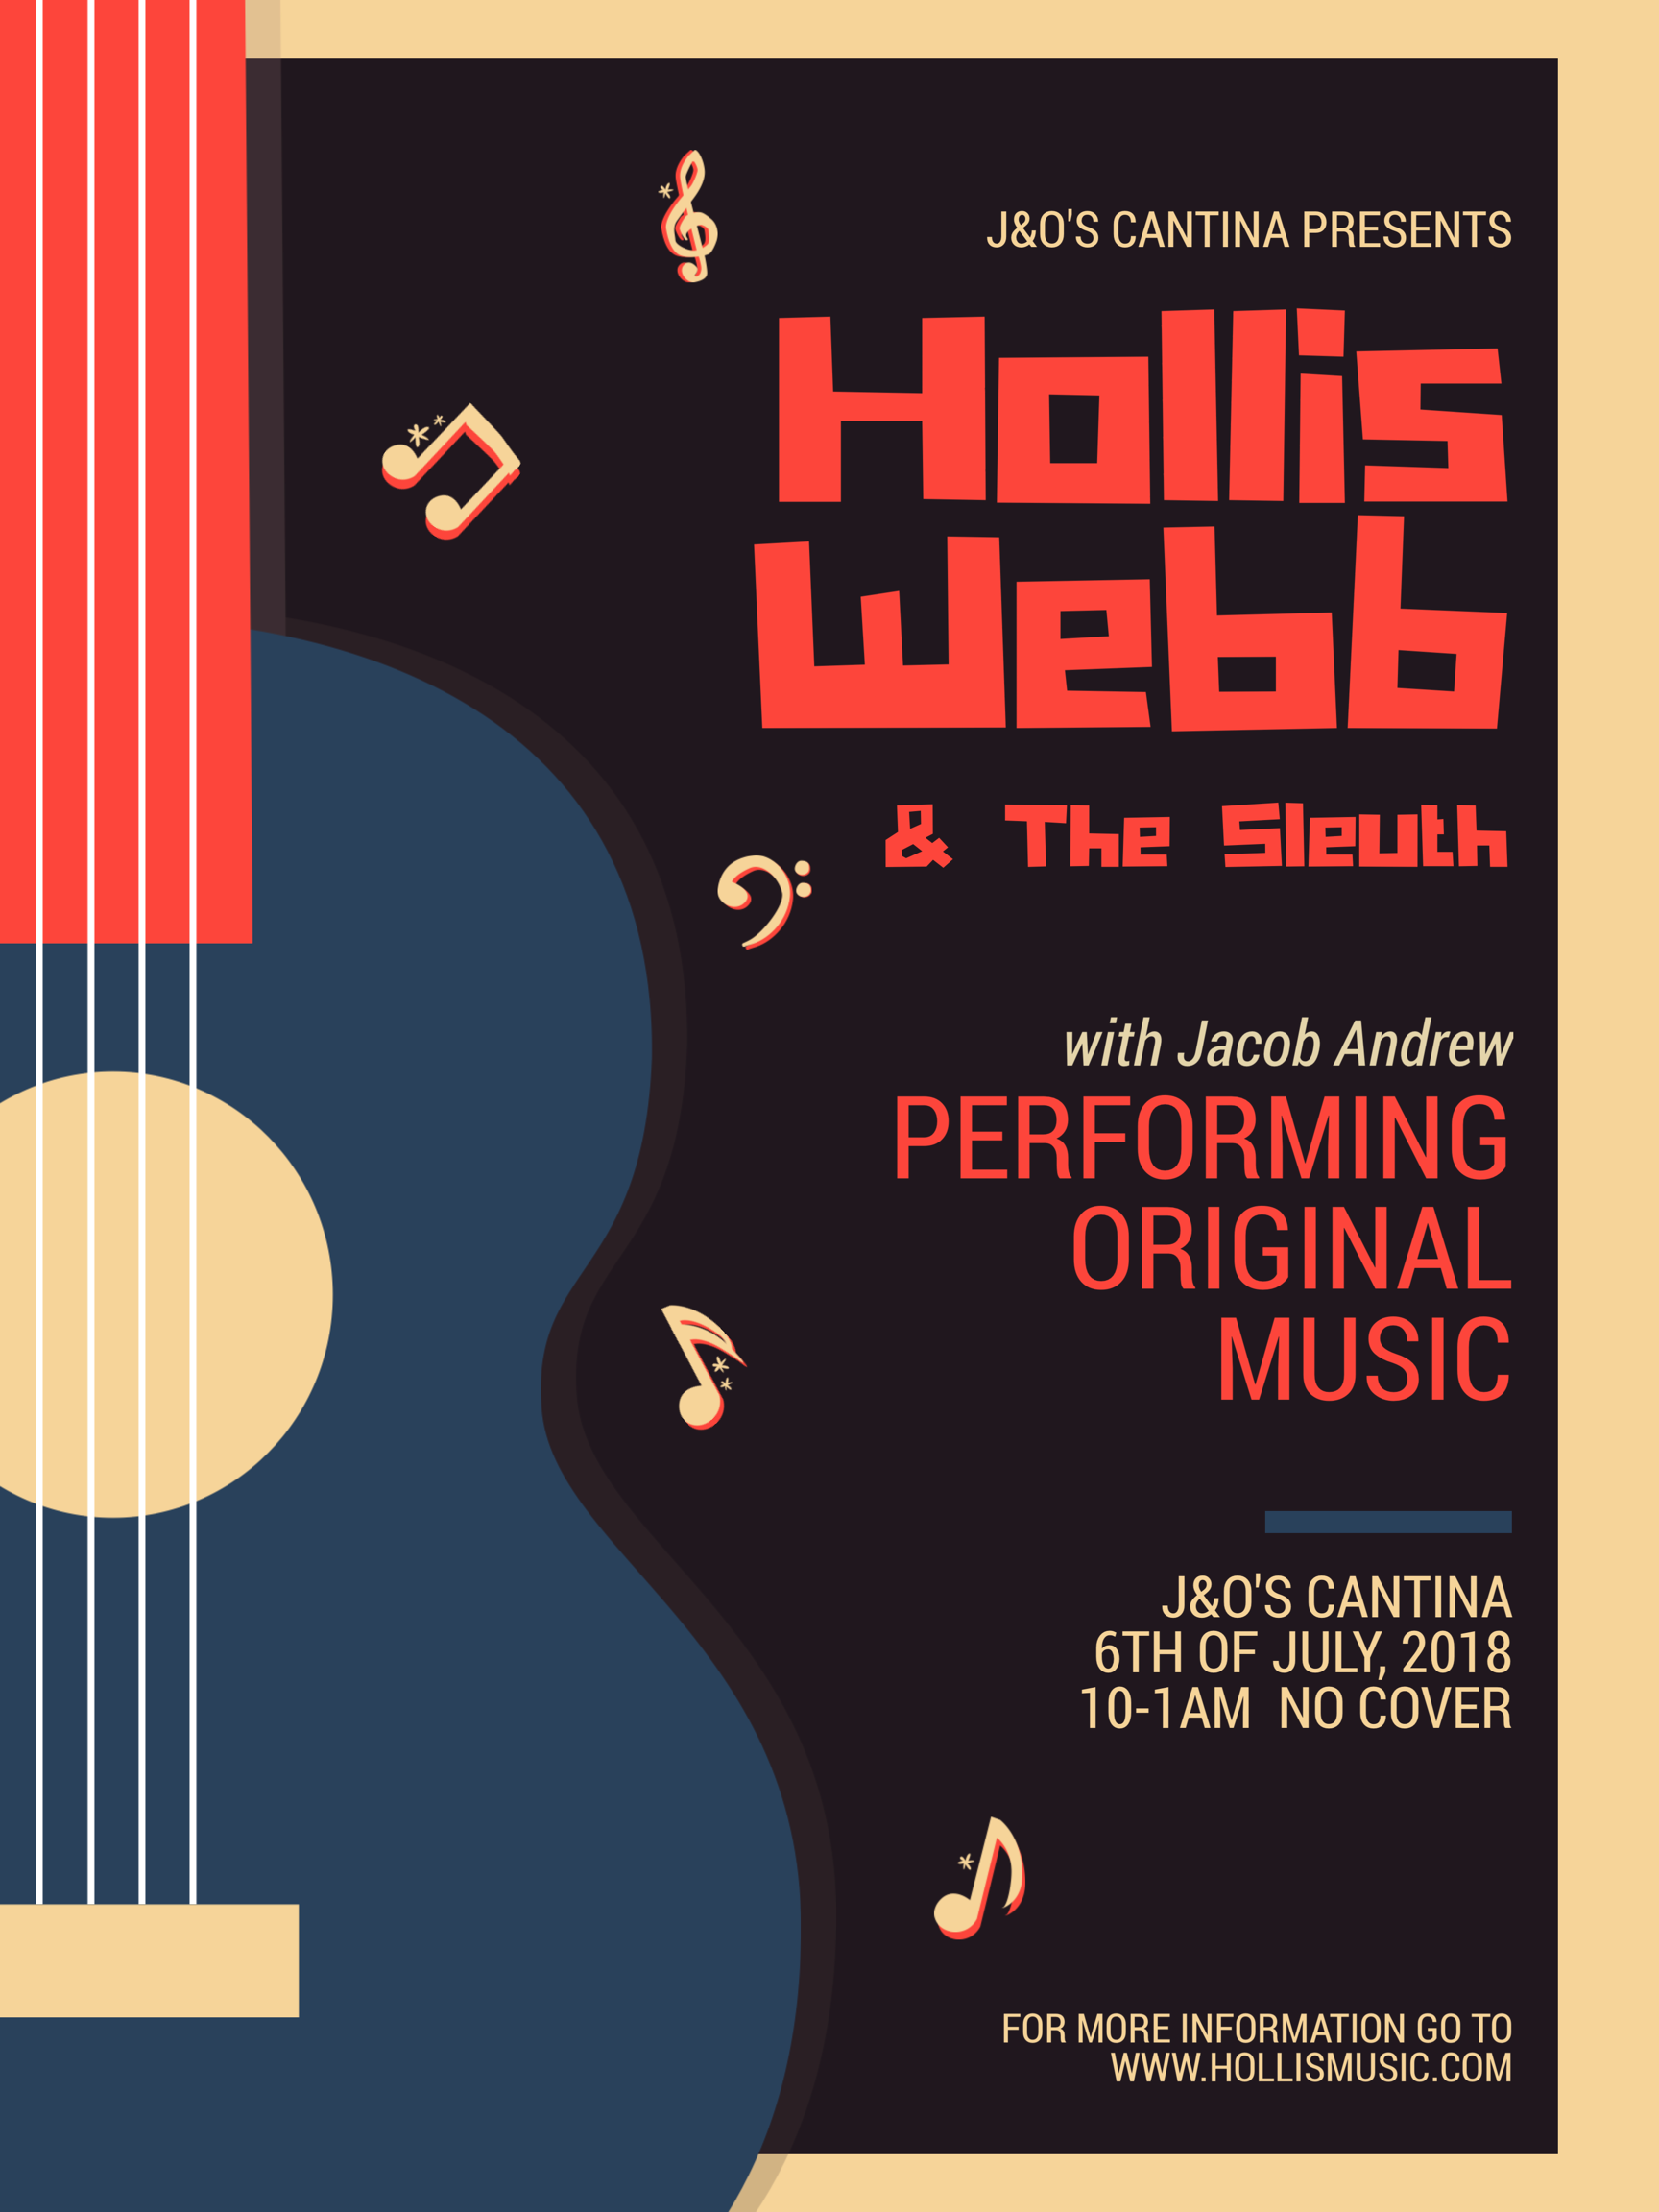 Come on down to the return of Hollis Webb & The Sleuth to J&O's Cantina which is BACK under the original ownership!  Come back home!  We're here to greet ya!